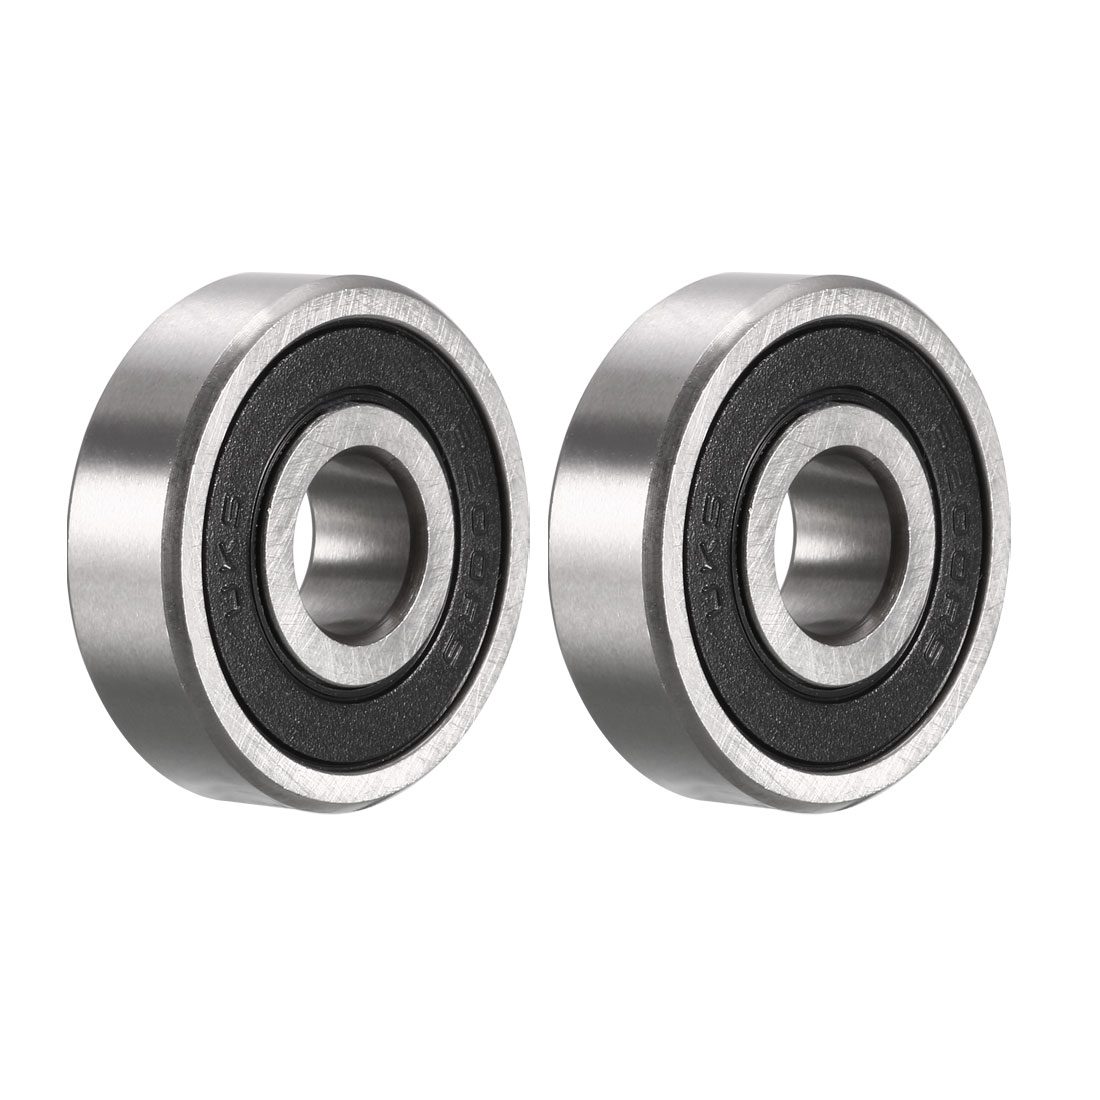 2pcs 6200RS 10mm Inner 30mm Outer Dia Rubber Sealed Single Row Deep Groove Ball Bearing for Electric Motor